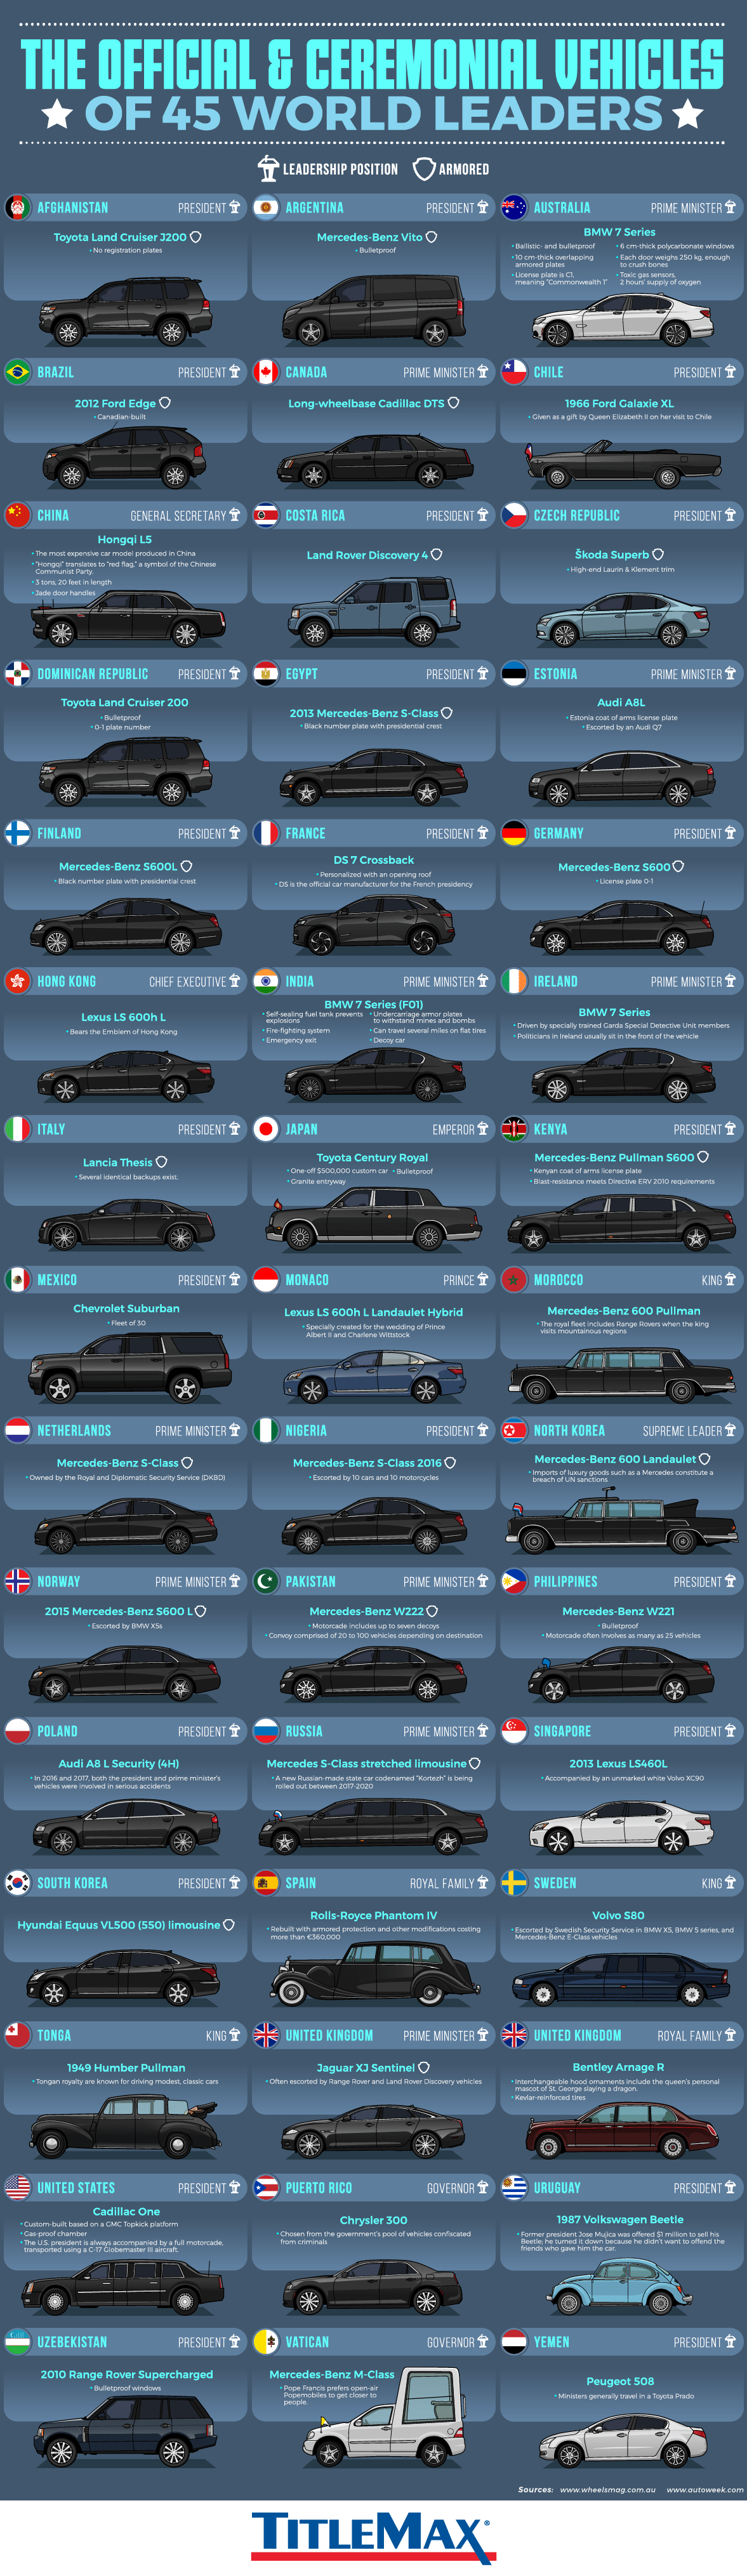 Potent Symbols of Office: Official and Ceremonial Vehicles of World Leaders - Infographic